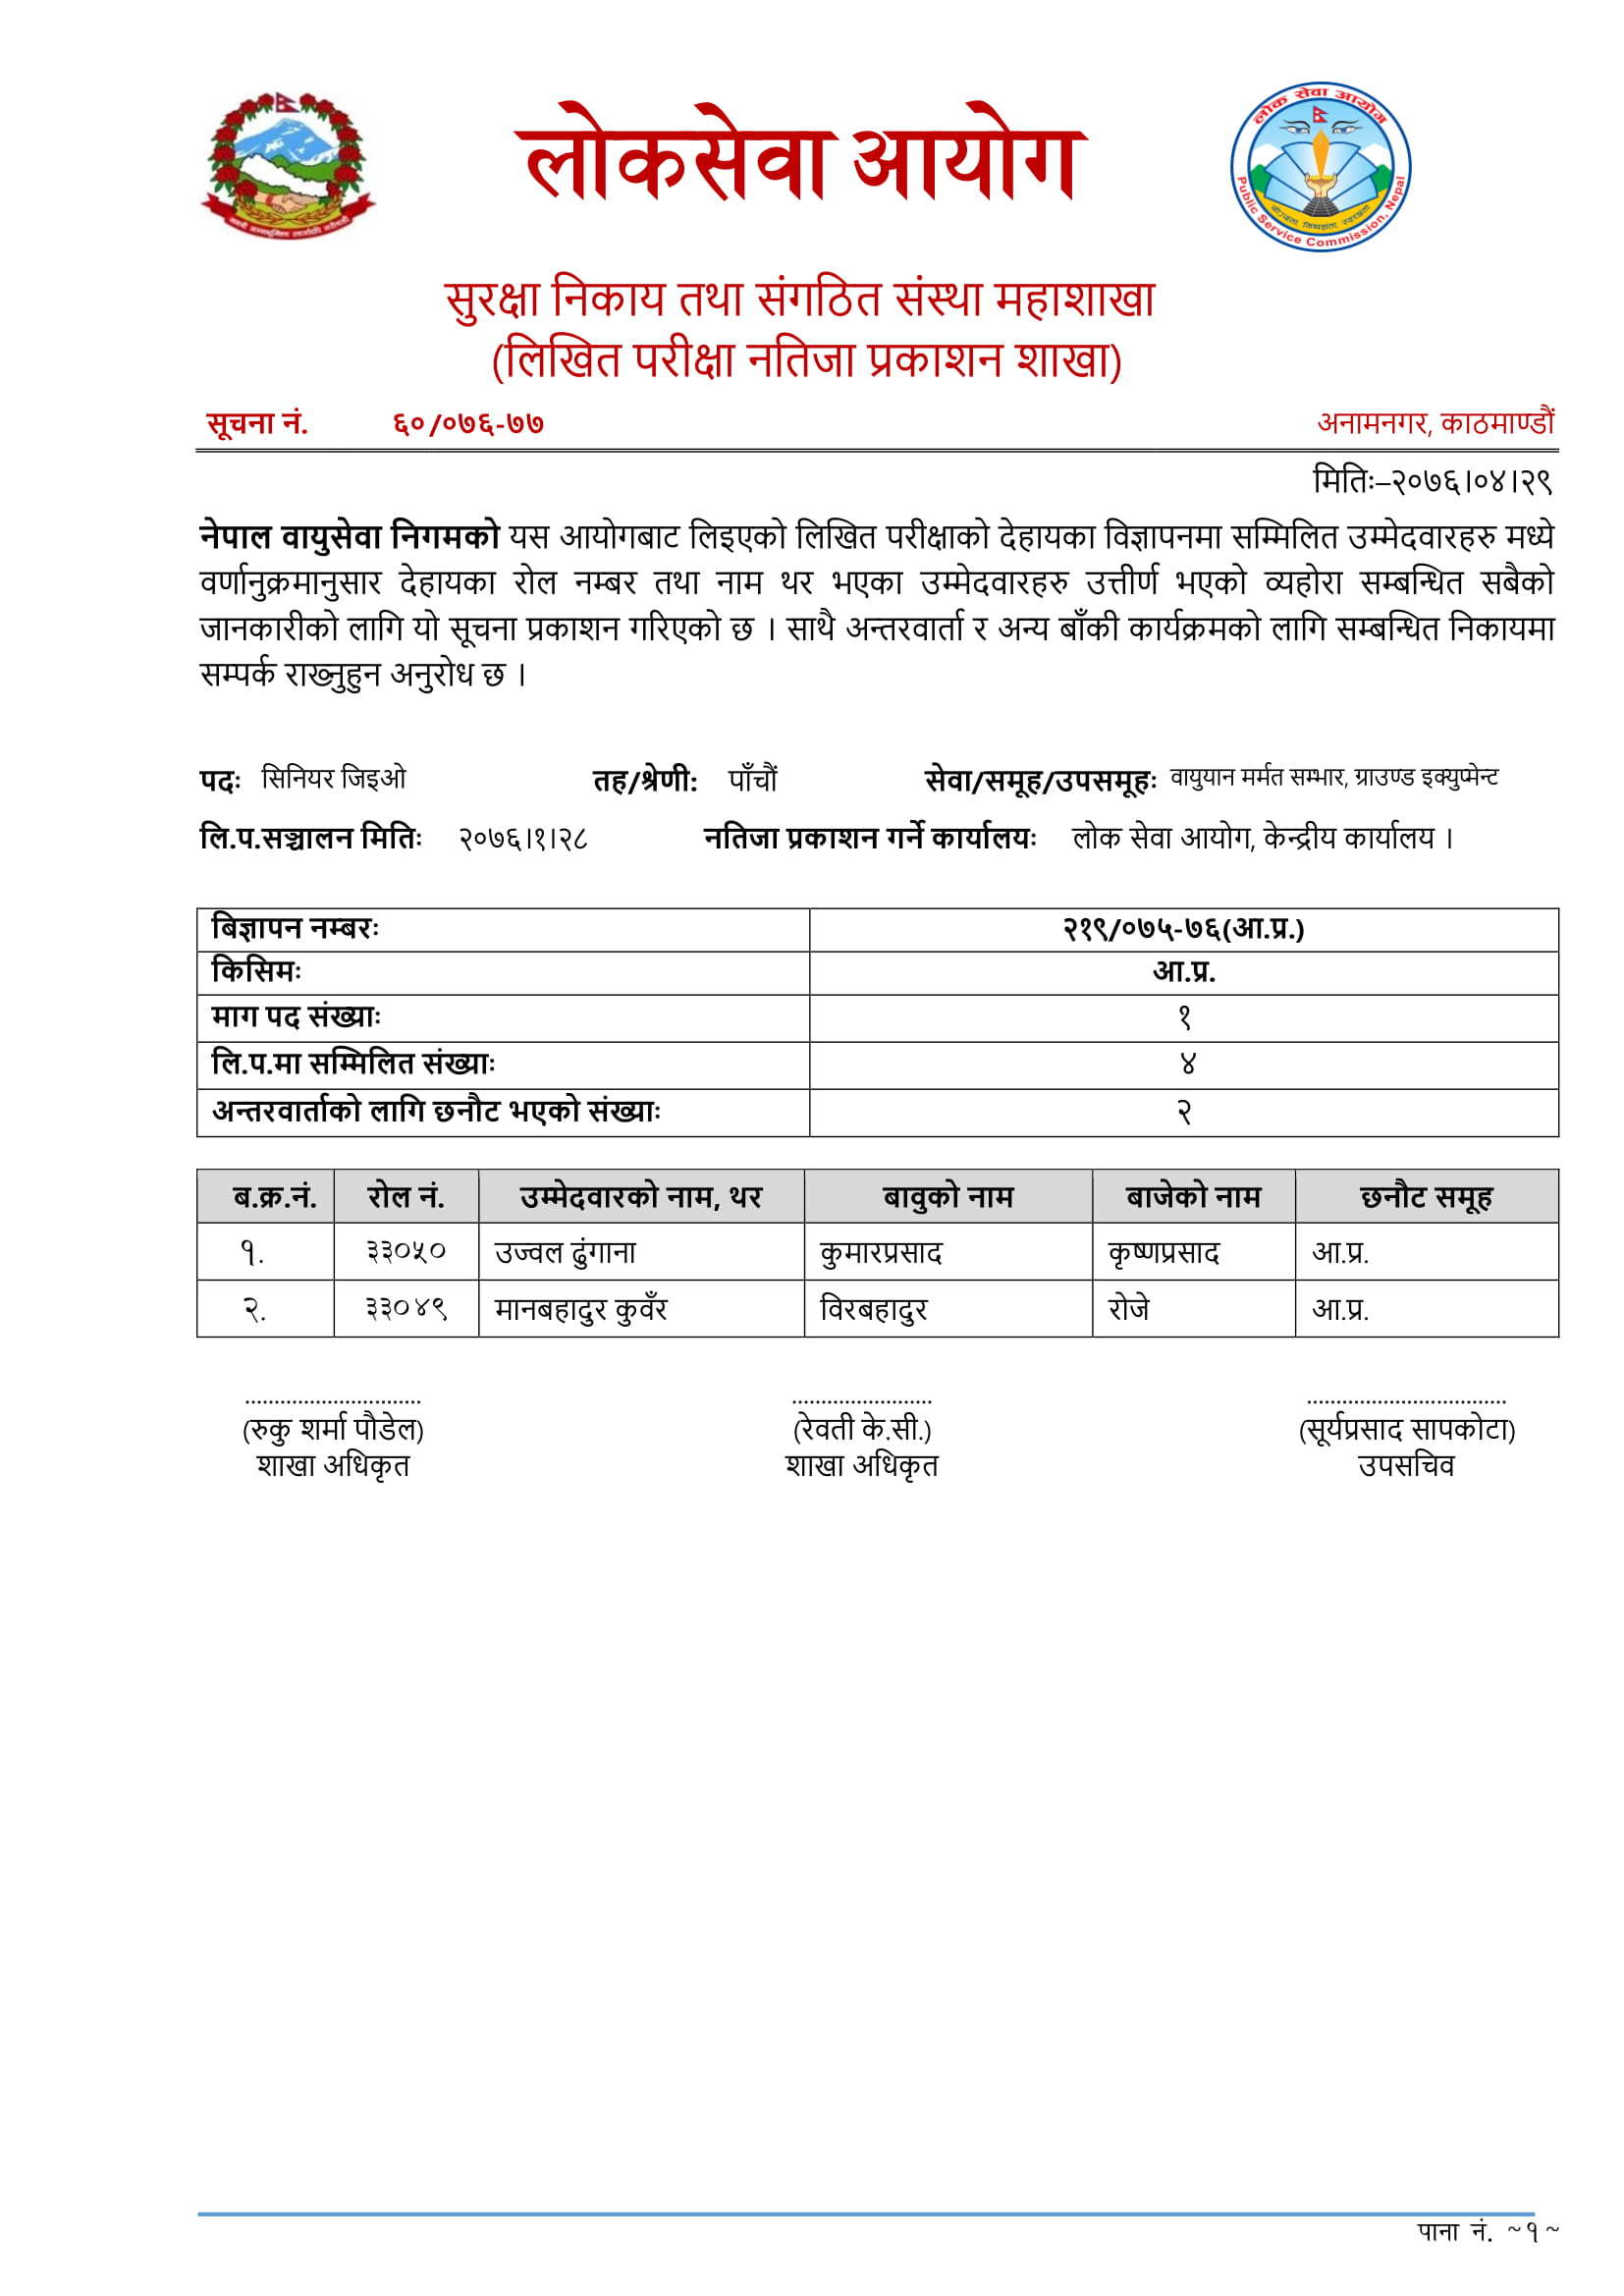 Nepal Airlines Exam Result,  Nepal Airlines Exam Result 2076,  Nepal Airlines Result,  Nepal Airlines Result 2076,  Nepal Airlines Result,  Nepal Airlines Corporation,  Nepal Airlines Corporation result,  Nepal Airlines Corporation result 2076, Airlines Exam Result,  Nepal Airlines Exam Result 2076,  Nepal Airlines Result,  Nepal Airlines Result 2076,  Nepal Airlines Result,  Nepal Airlines Corporation,  Nepal Airlines Corporation result,  Nepal Airlines Corporation result 2076,